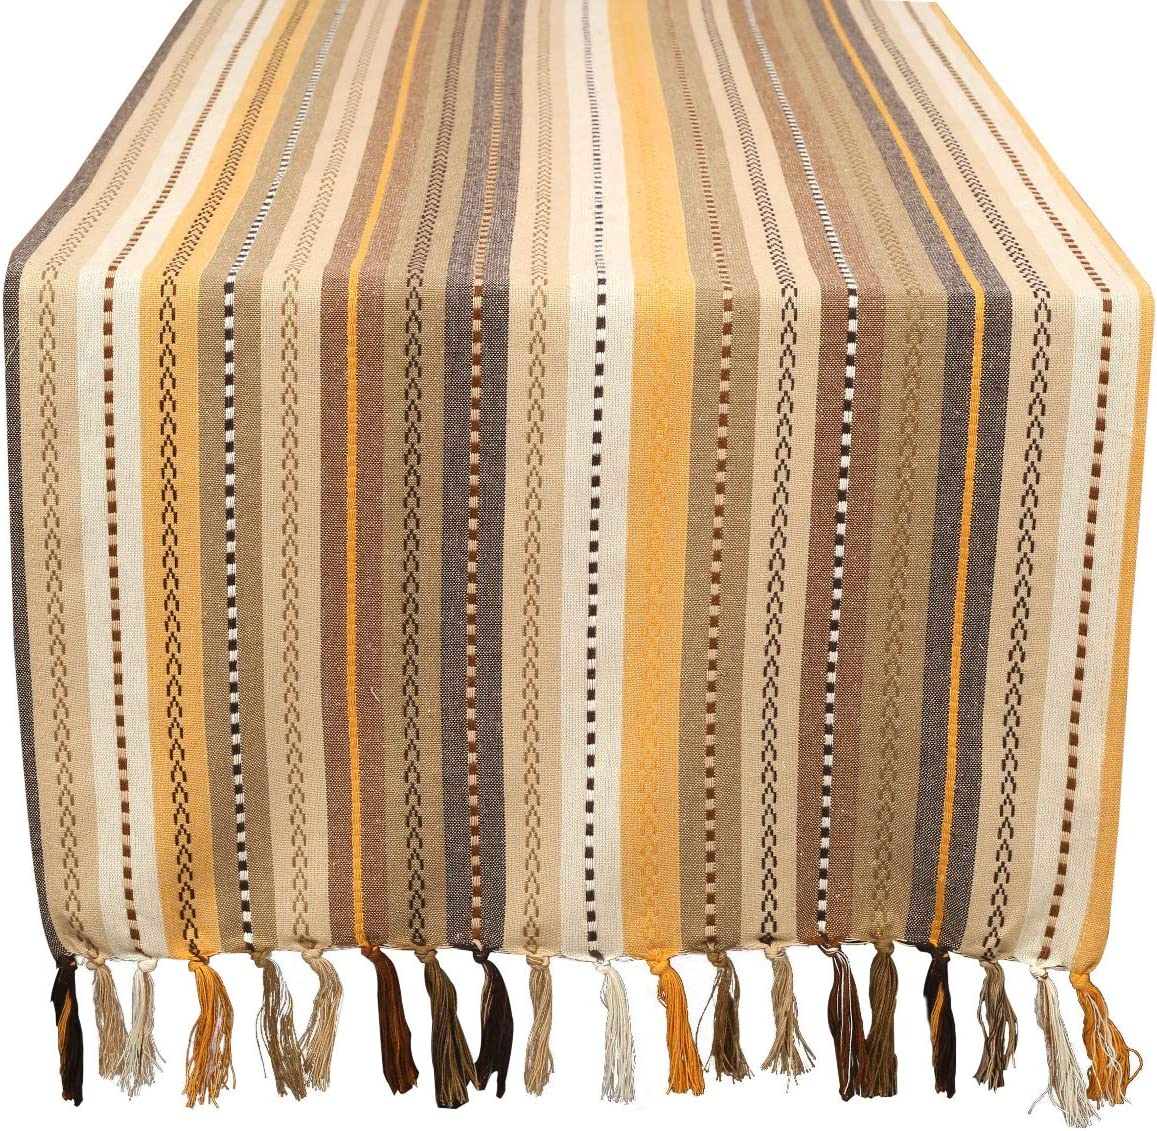 Hand Woven by Skilled Artisans Single Piece Mexican Multi-Colored Stripe Cotton Table Runner 16x72 with Decorative Fringes